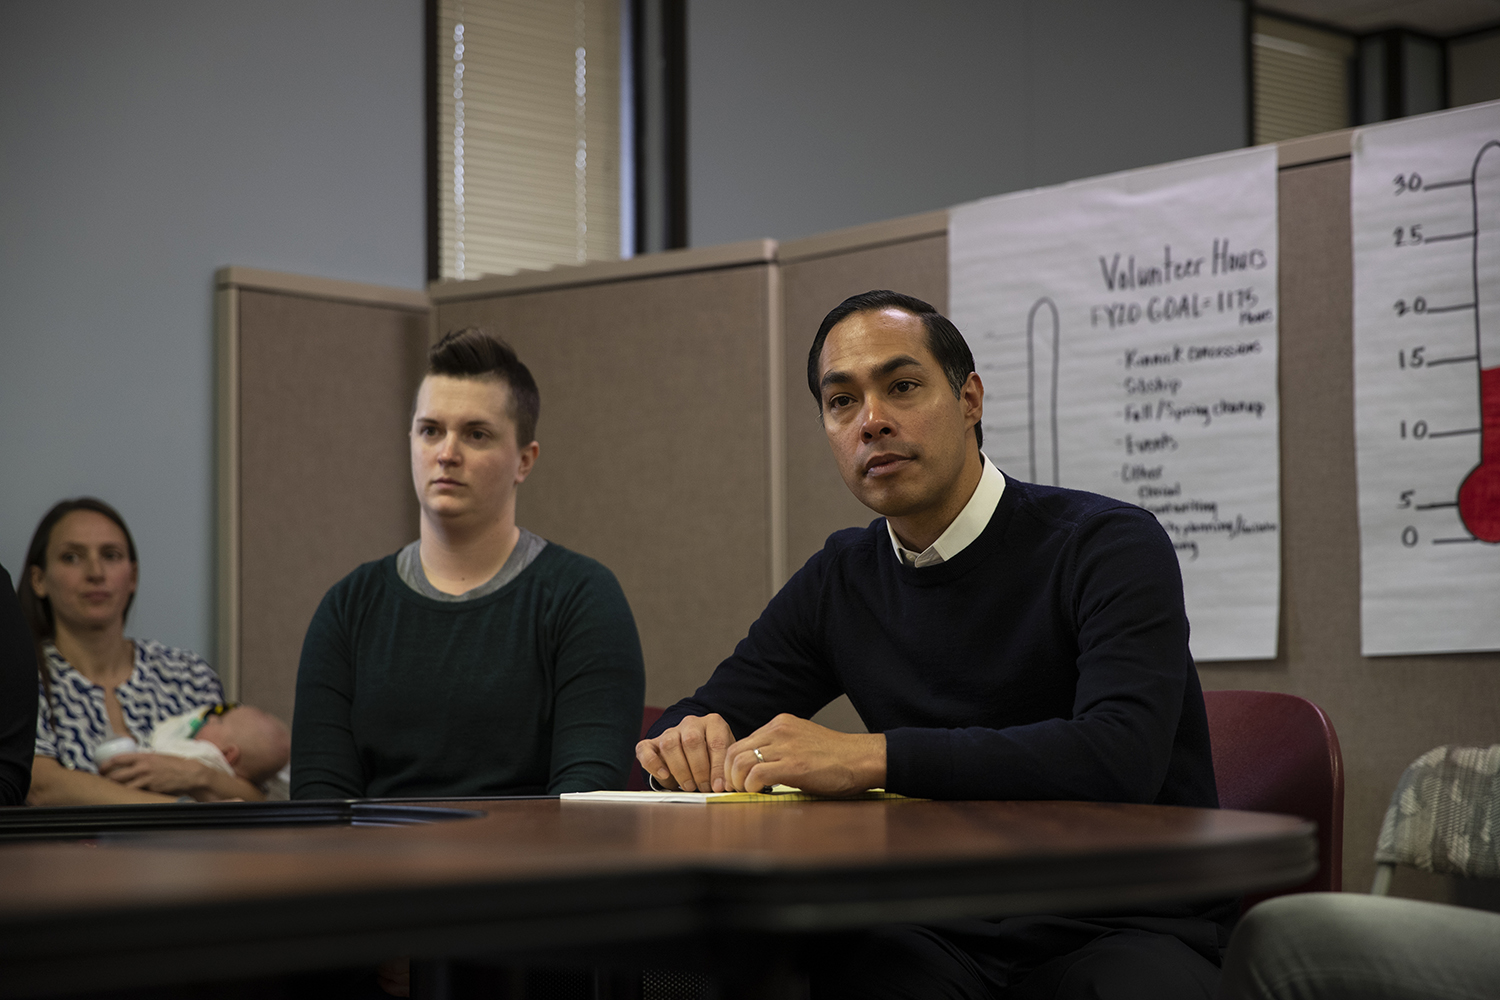 Former U.S. Secretary of Housing and Urban Development and 2020 Democratic candidate Julián Castro listens to parents and board members at The Arc of Southeast Iowa on Sunday, Nov. 10, 2019. Attendees brought up education, funding, privatization of medical care, minimum wage, and other factors that play into the needs of The Arc and the families they serve. (Jenna Galligan/ The Daily Iowan)